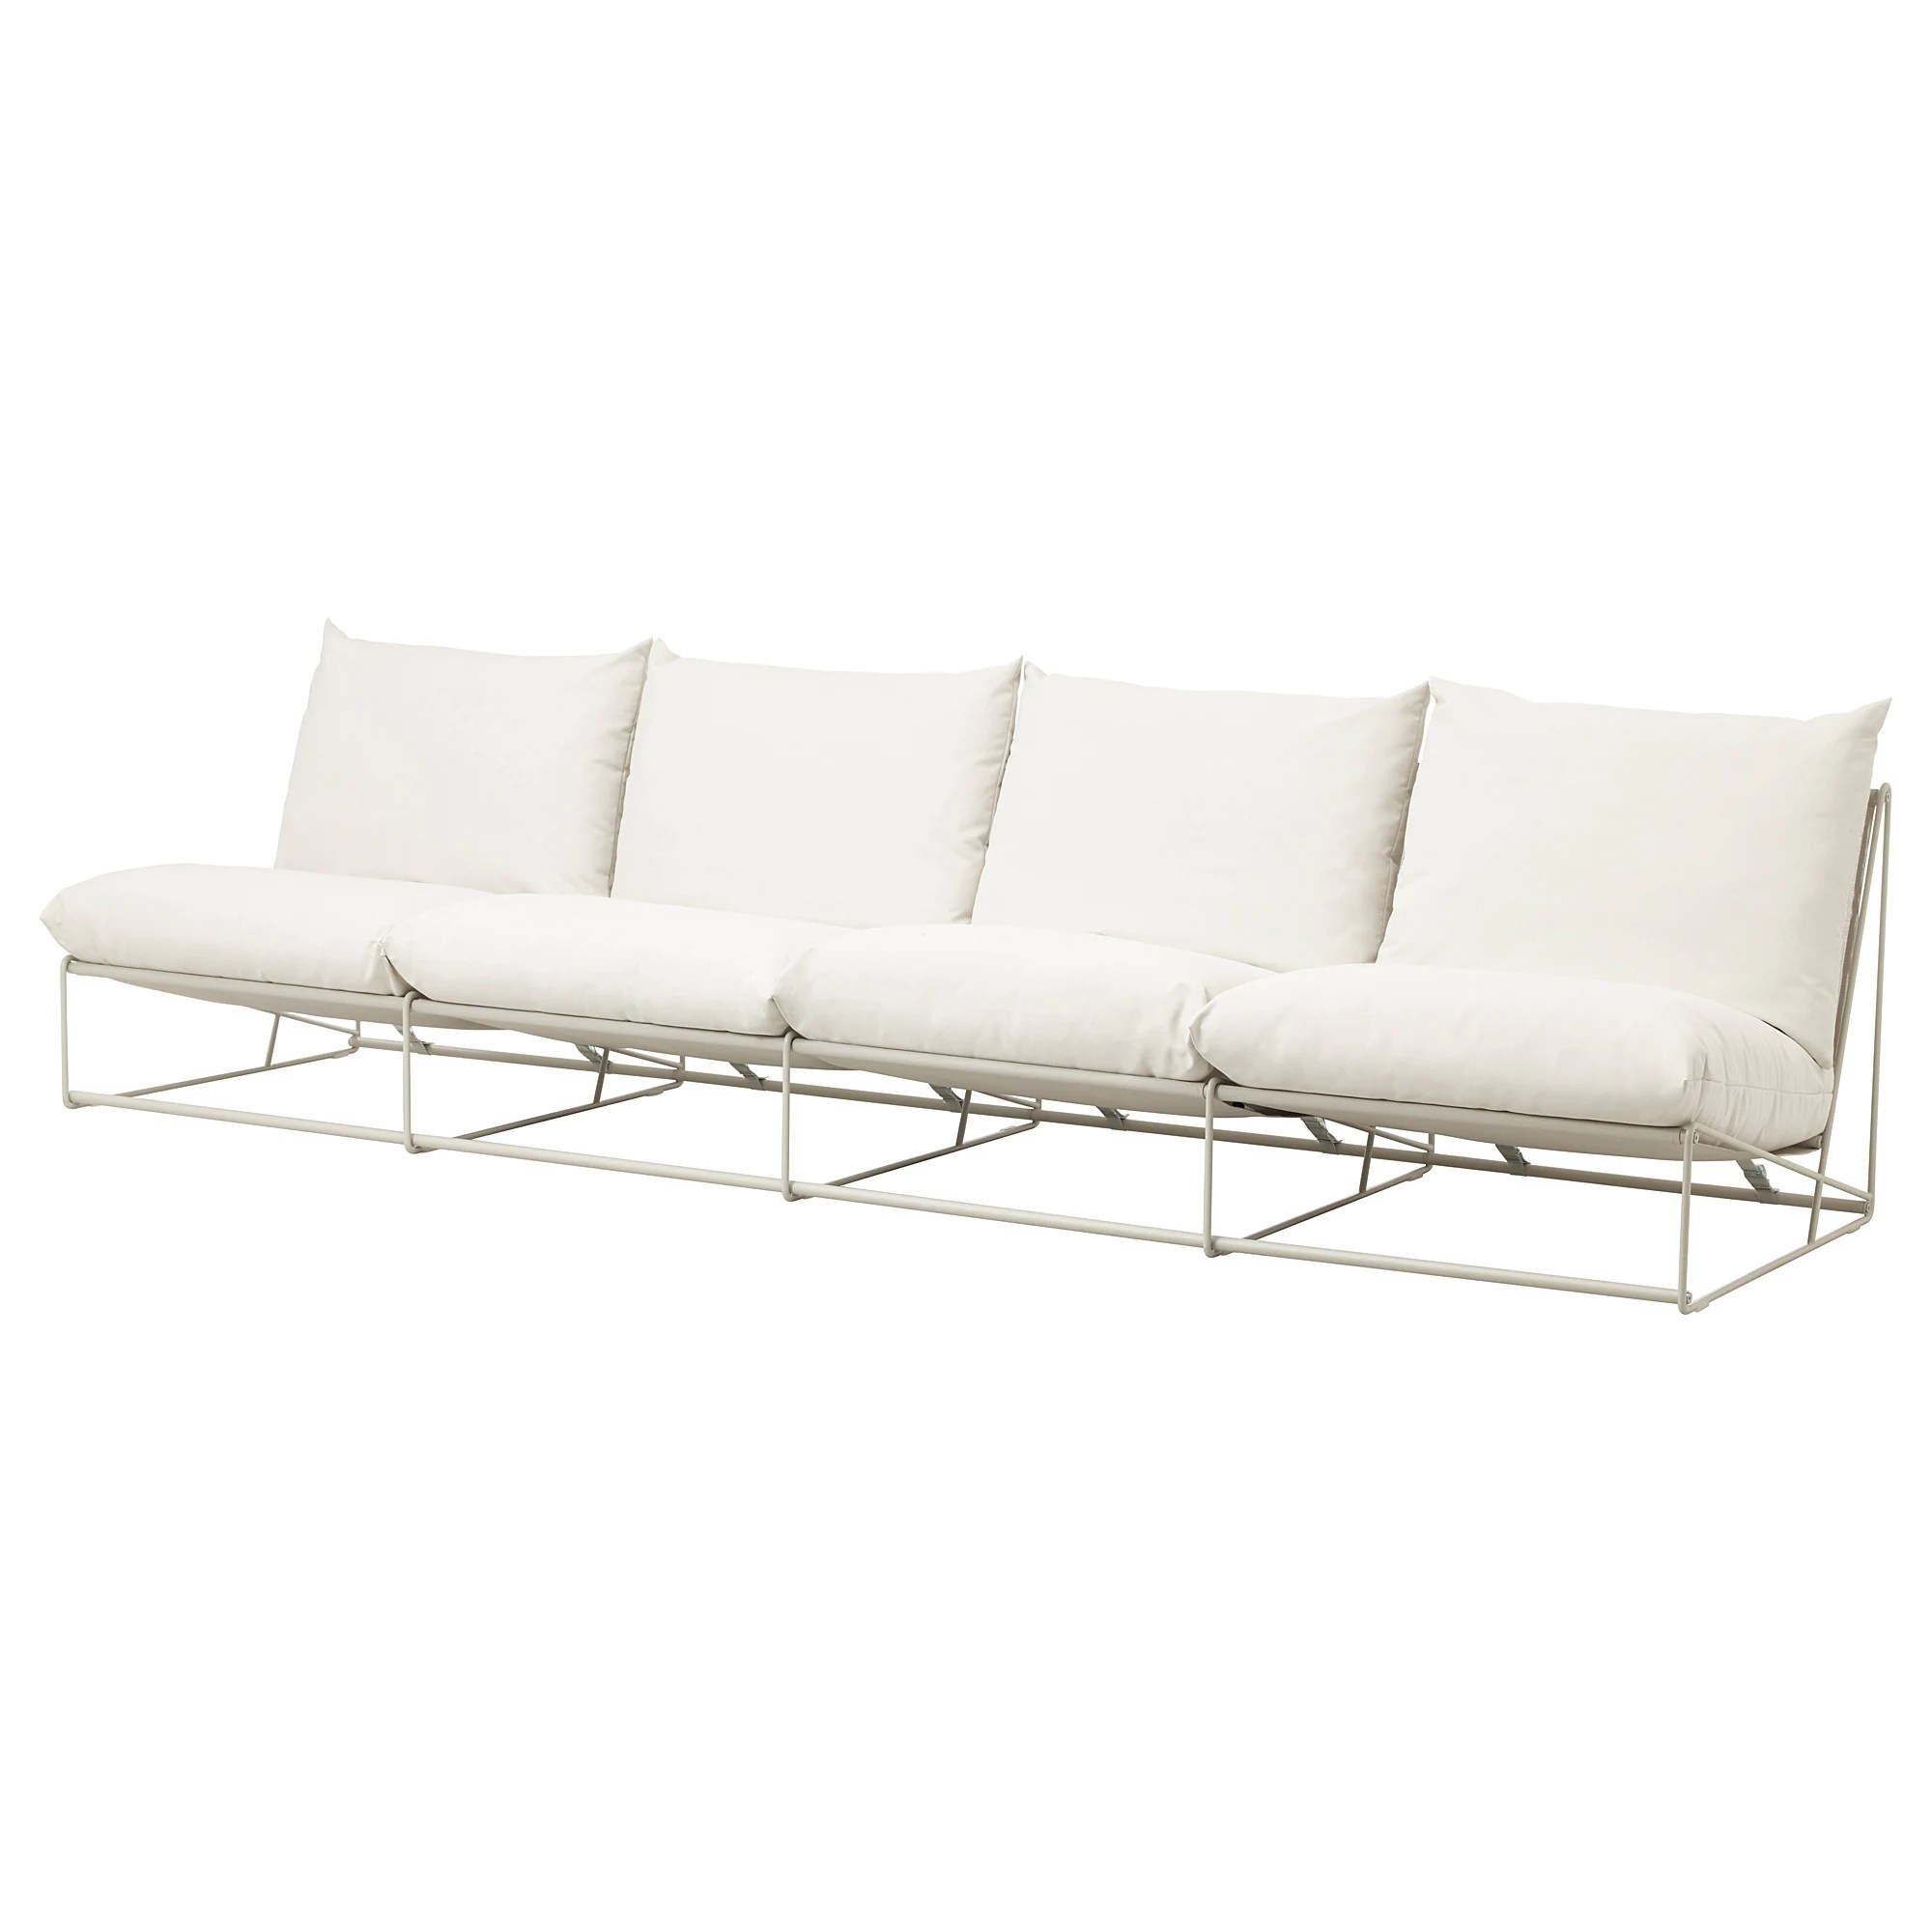 Ikea Sofa 4 Seater Havsten 4 Seat Sofa In Outdoor With Open End Without Armrests Beige